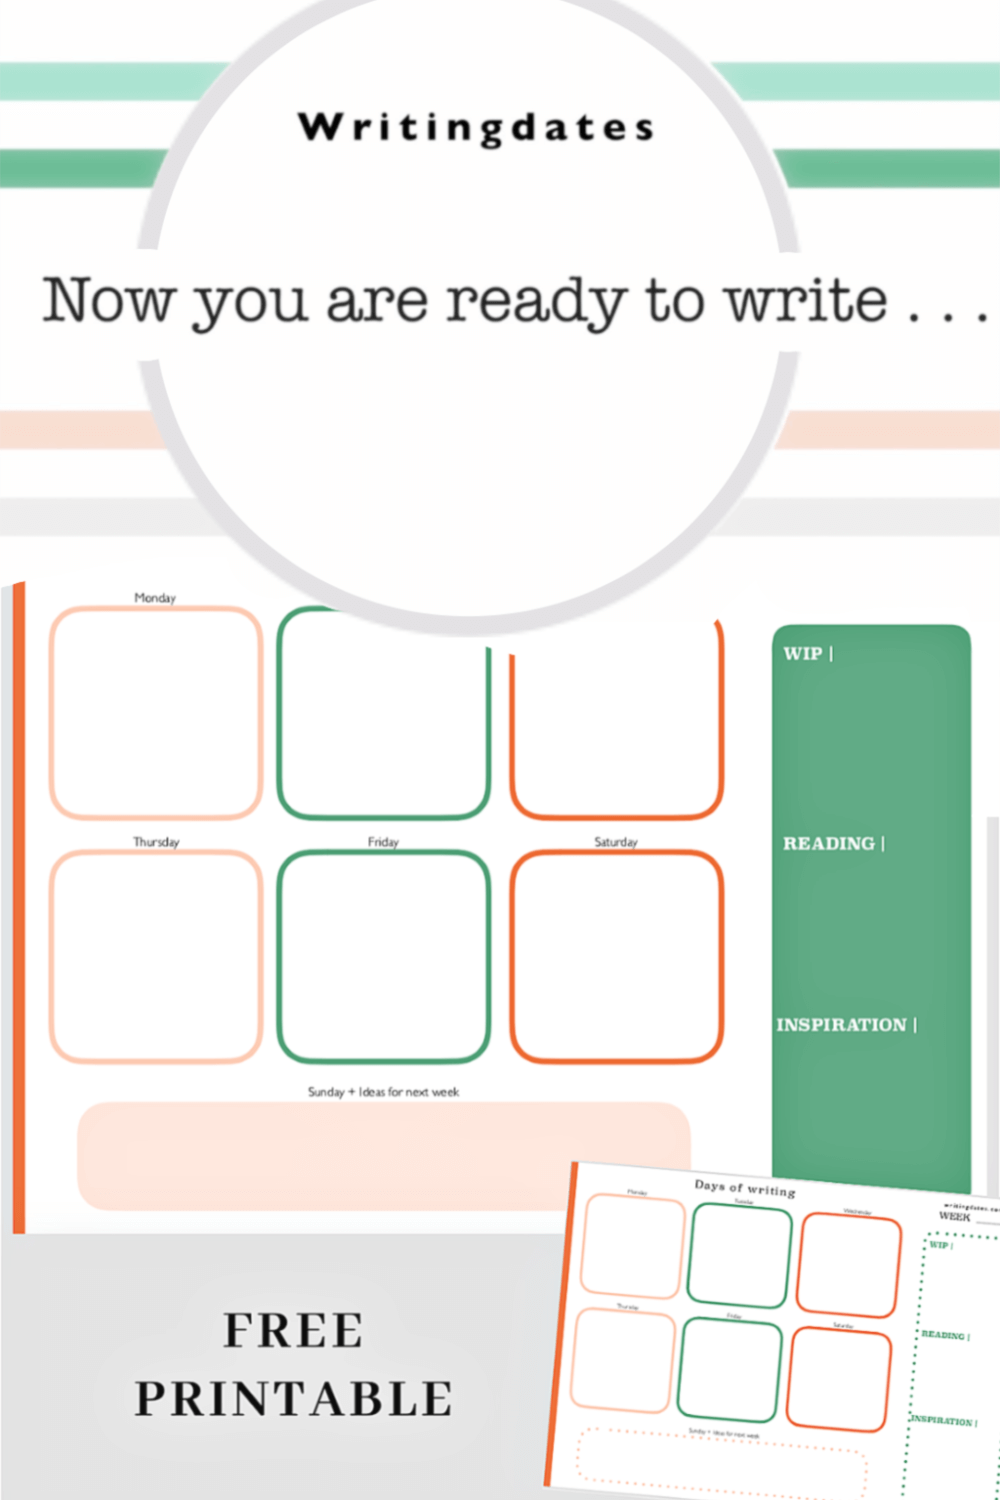 Free printable for planning 2020. A weekly and a monthly schedule and stationary you can take with you on the first writing date of January.